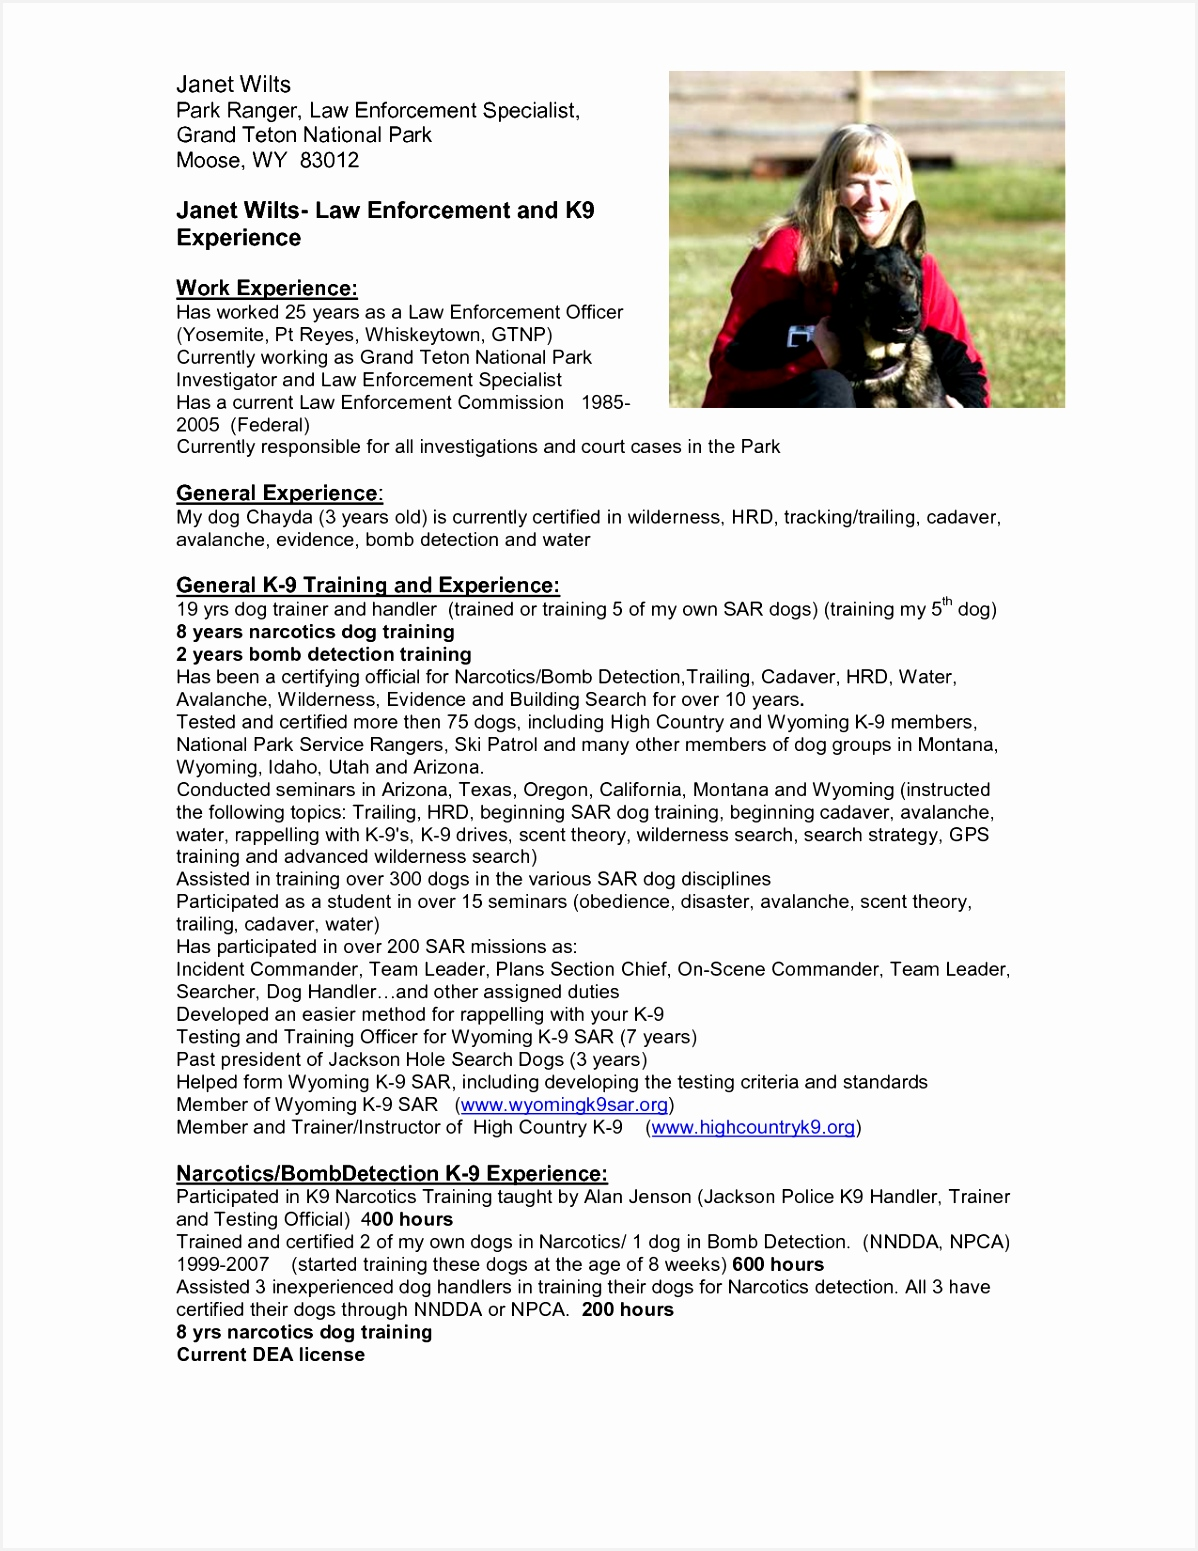 Park Ranger Resume Efred Inspirational Park Ranger Resume Suzen Rabionetassociats Of Park Ranger Resume Y7spd Best Of Sample Job Posting Template